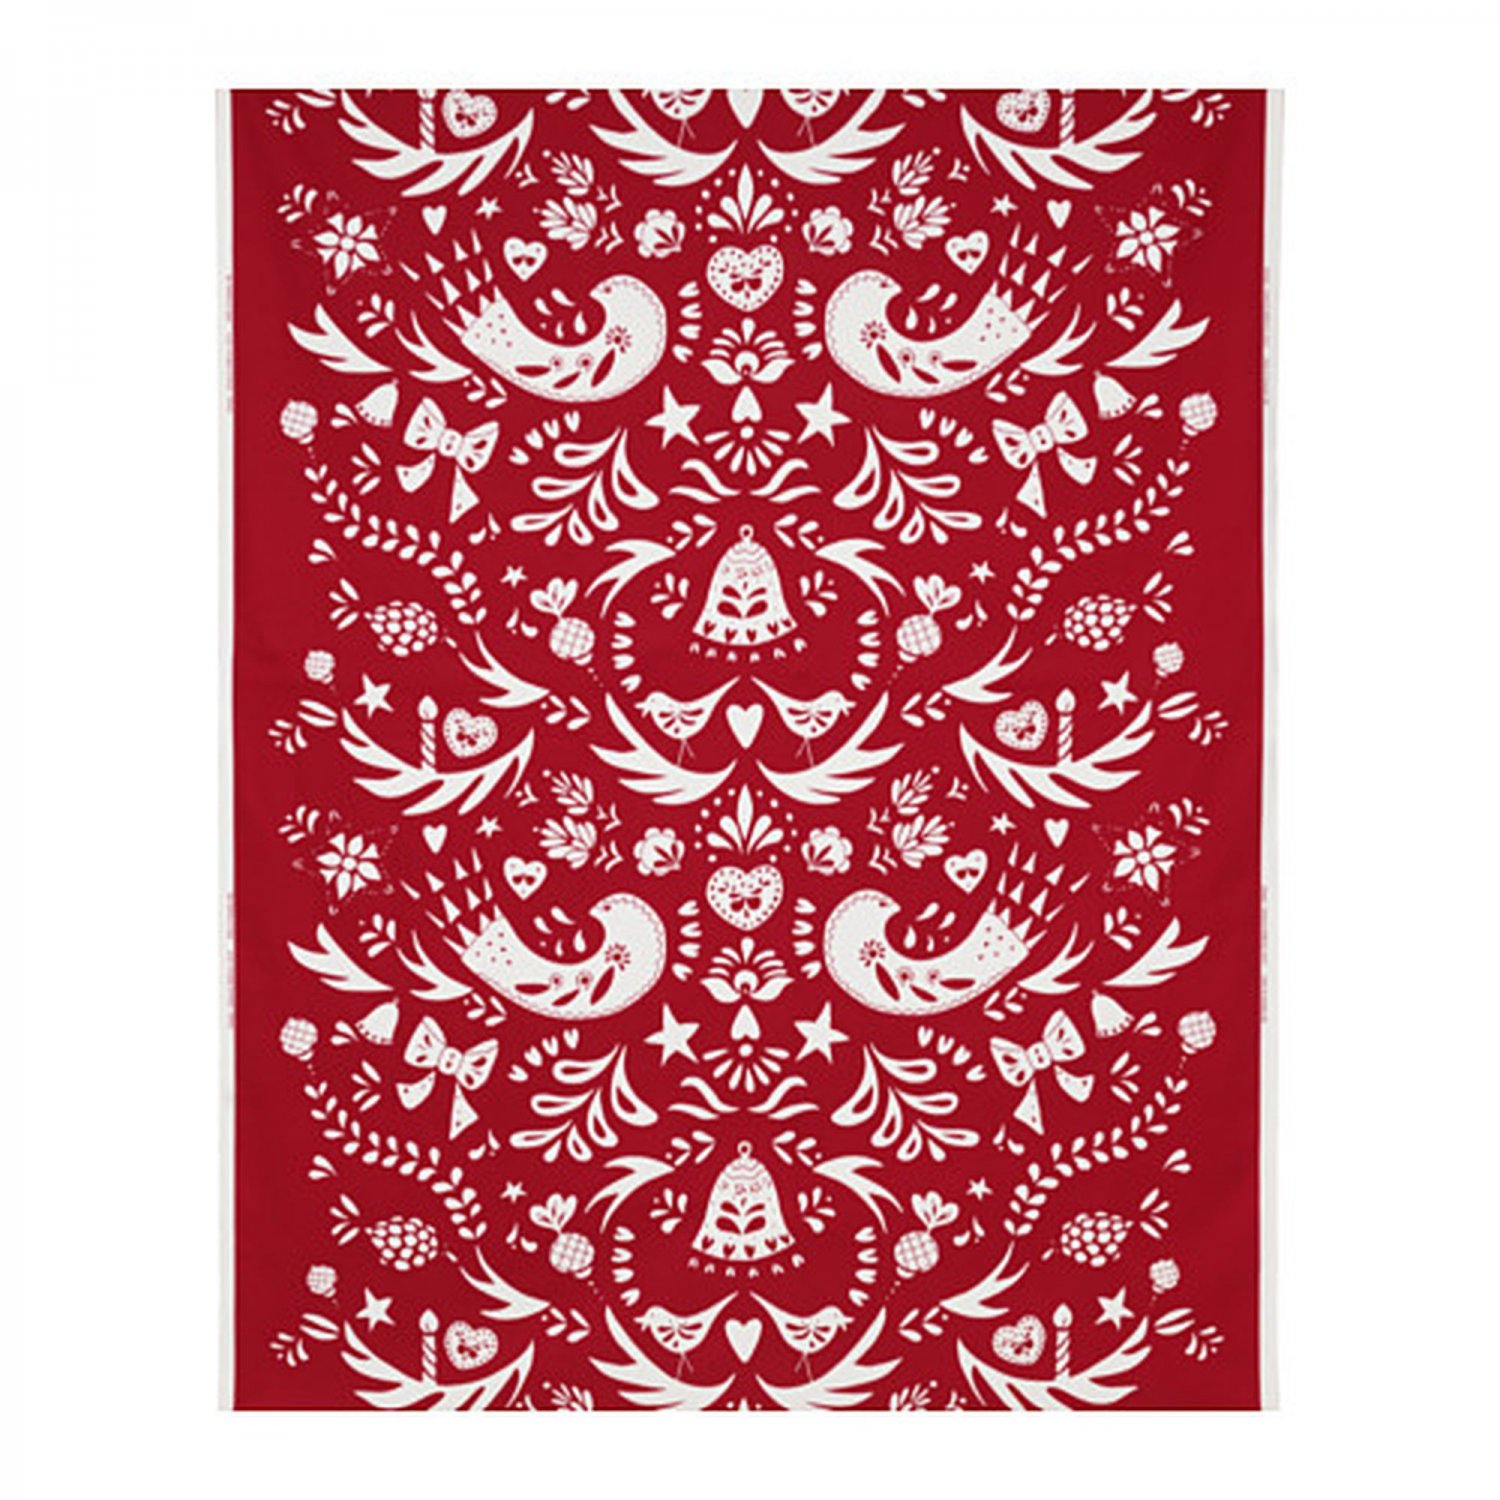 Ikea Textiles Ikea Vinter 2016 Fabric Material Red On White Scandinavian